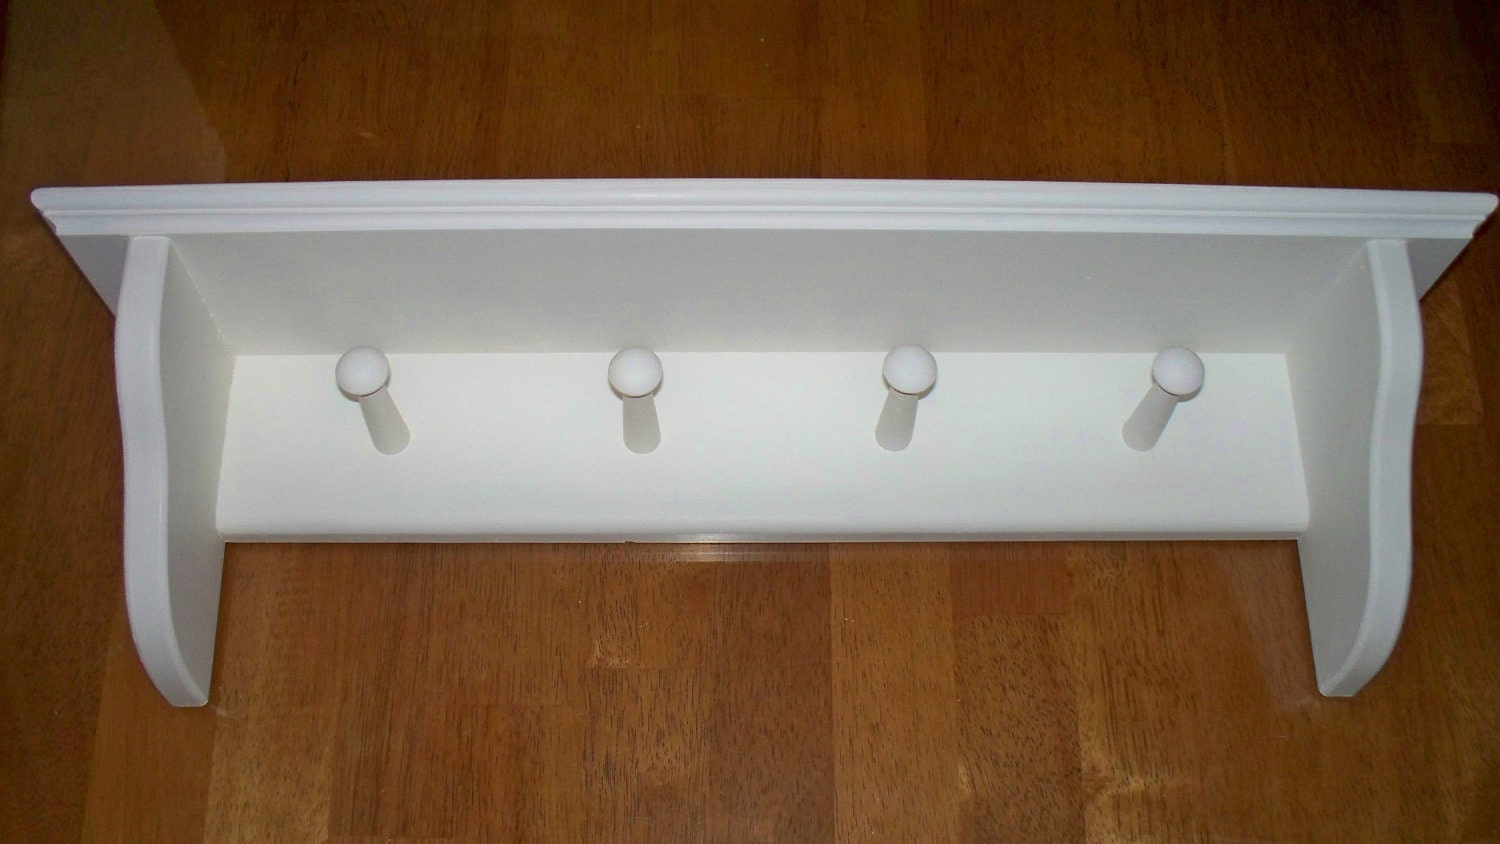 Coat Rack Wall Mounted Shelf Shaker Peg Shelf With 4 Pegs